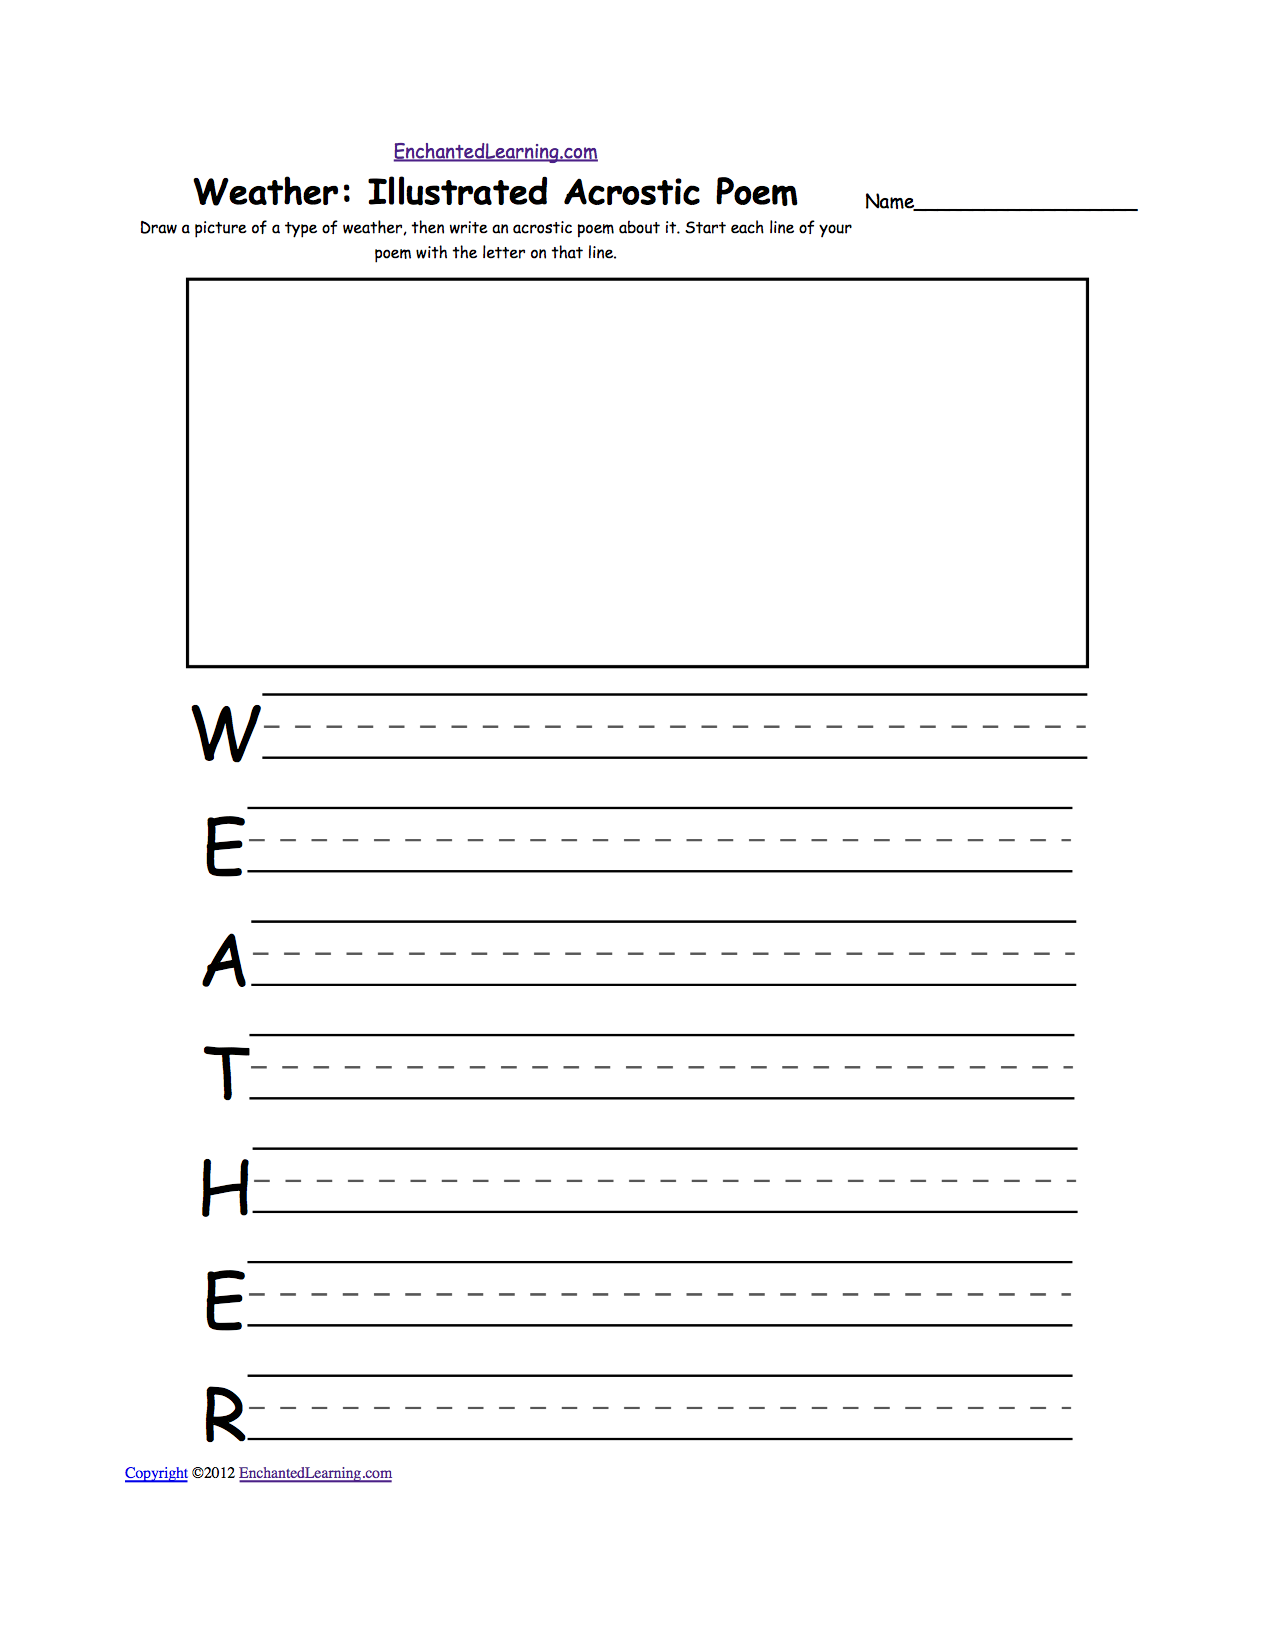 Weather Acrostic Poems: EnchantedLearning.com